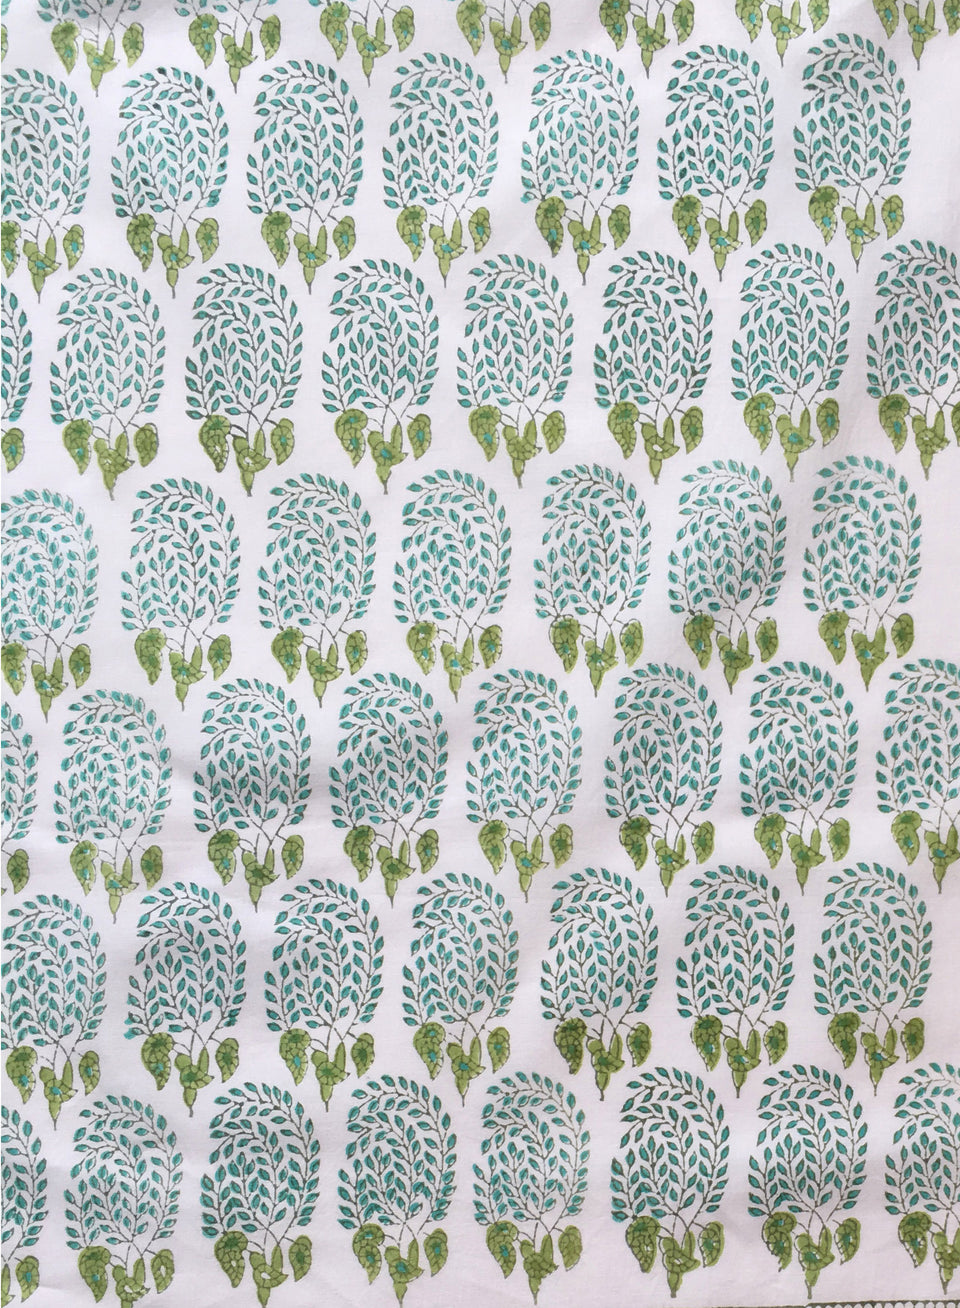 BUMBLE FABRIC IN AQUA/GREEN